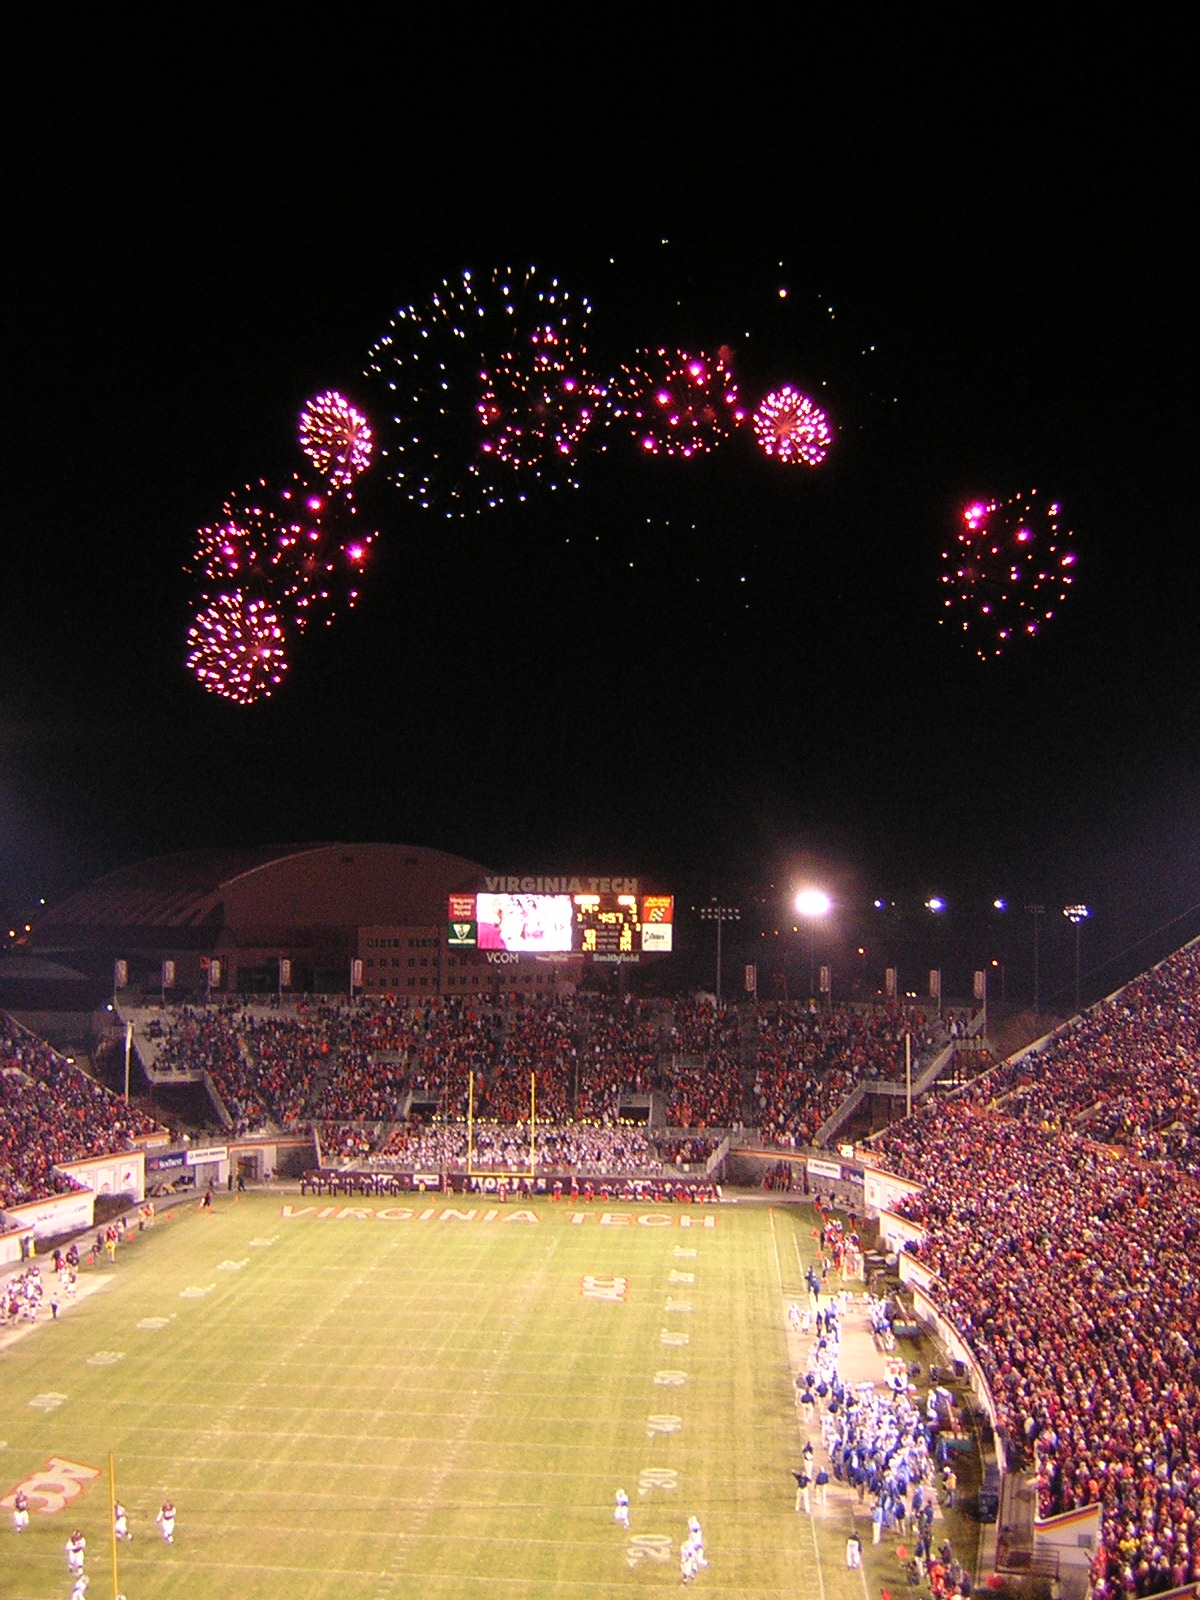 (2005) Fireworks over Lane Stadium, which houses the Hall of Fame Museum; image by By UserB - Own work, CC BY-SA 3.0, https://commons.wikimedia.org/w/index.php?curid=914427